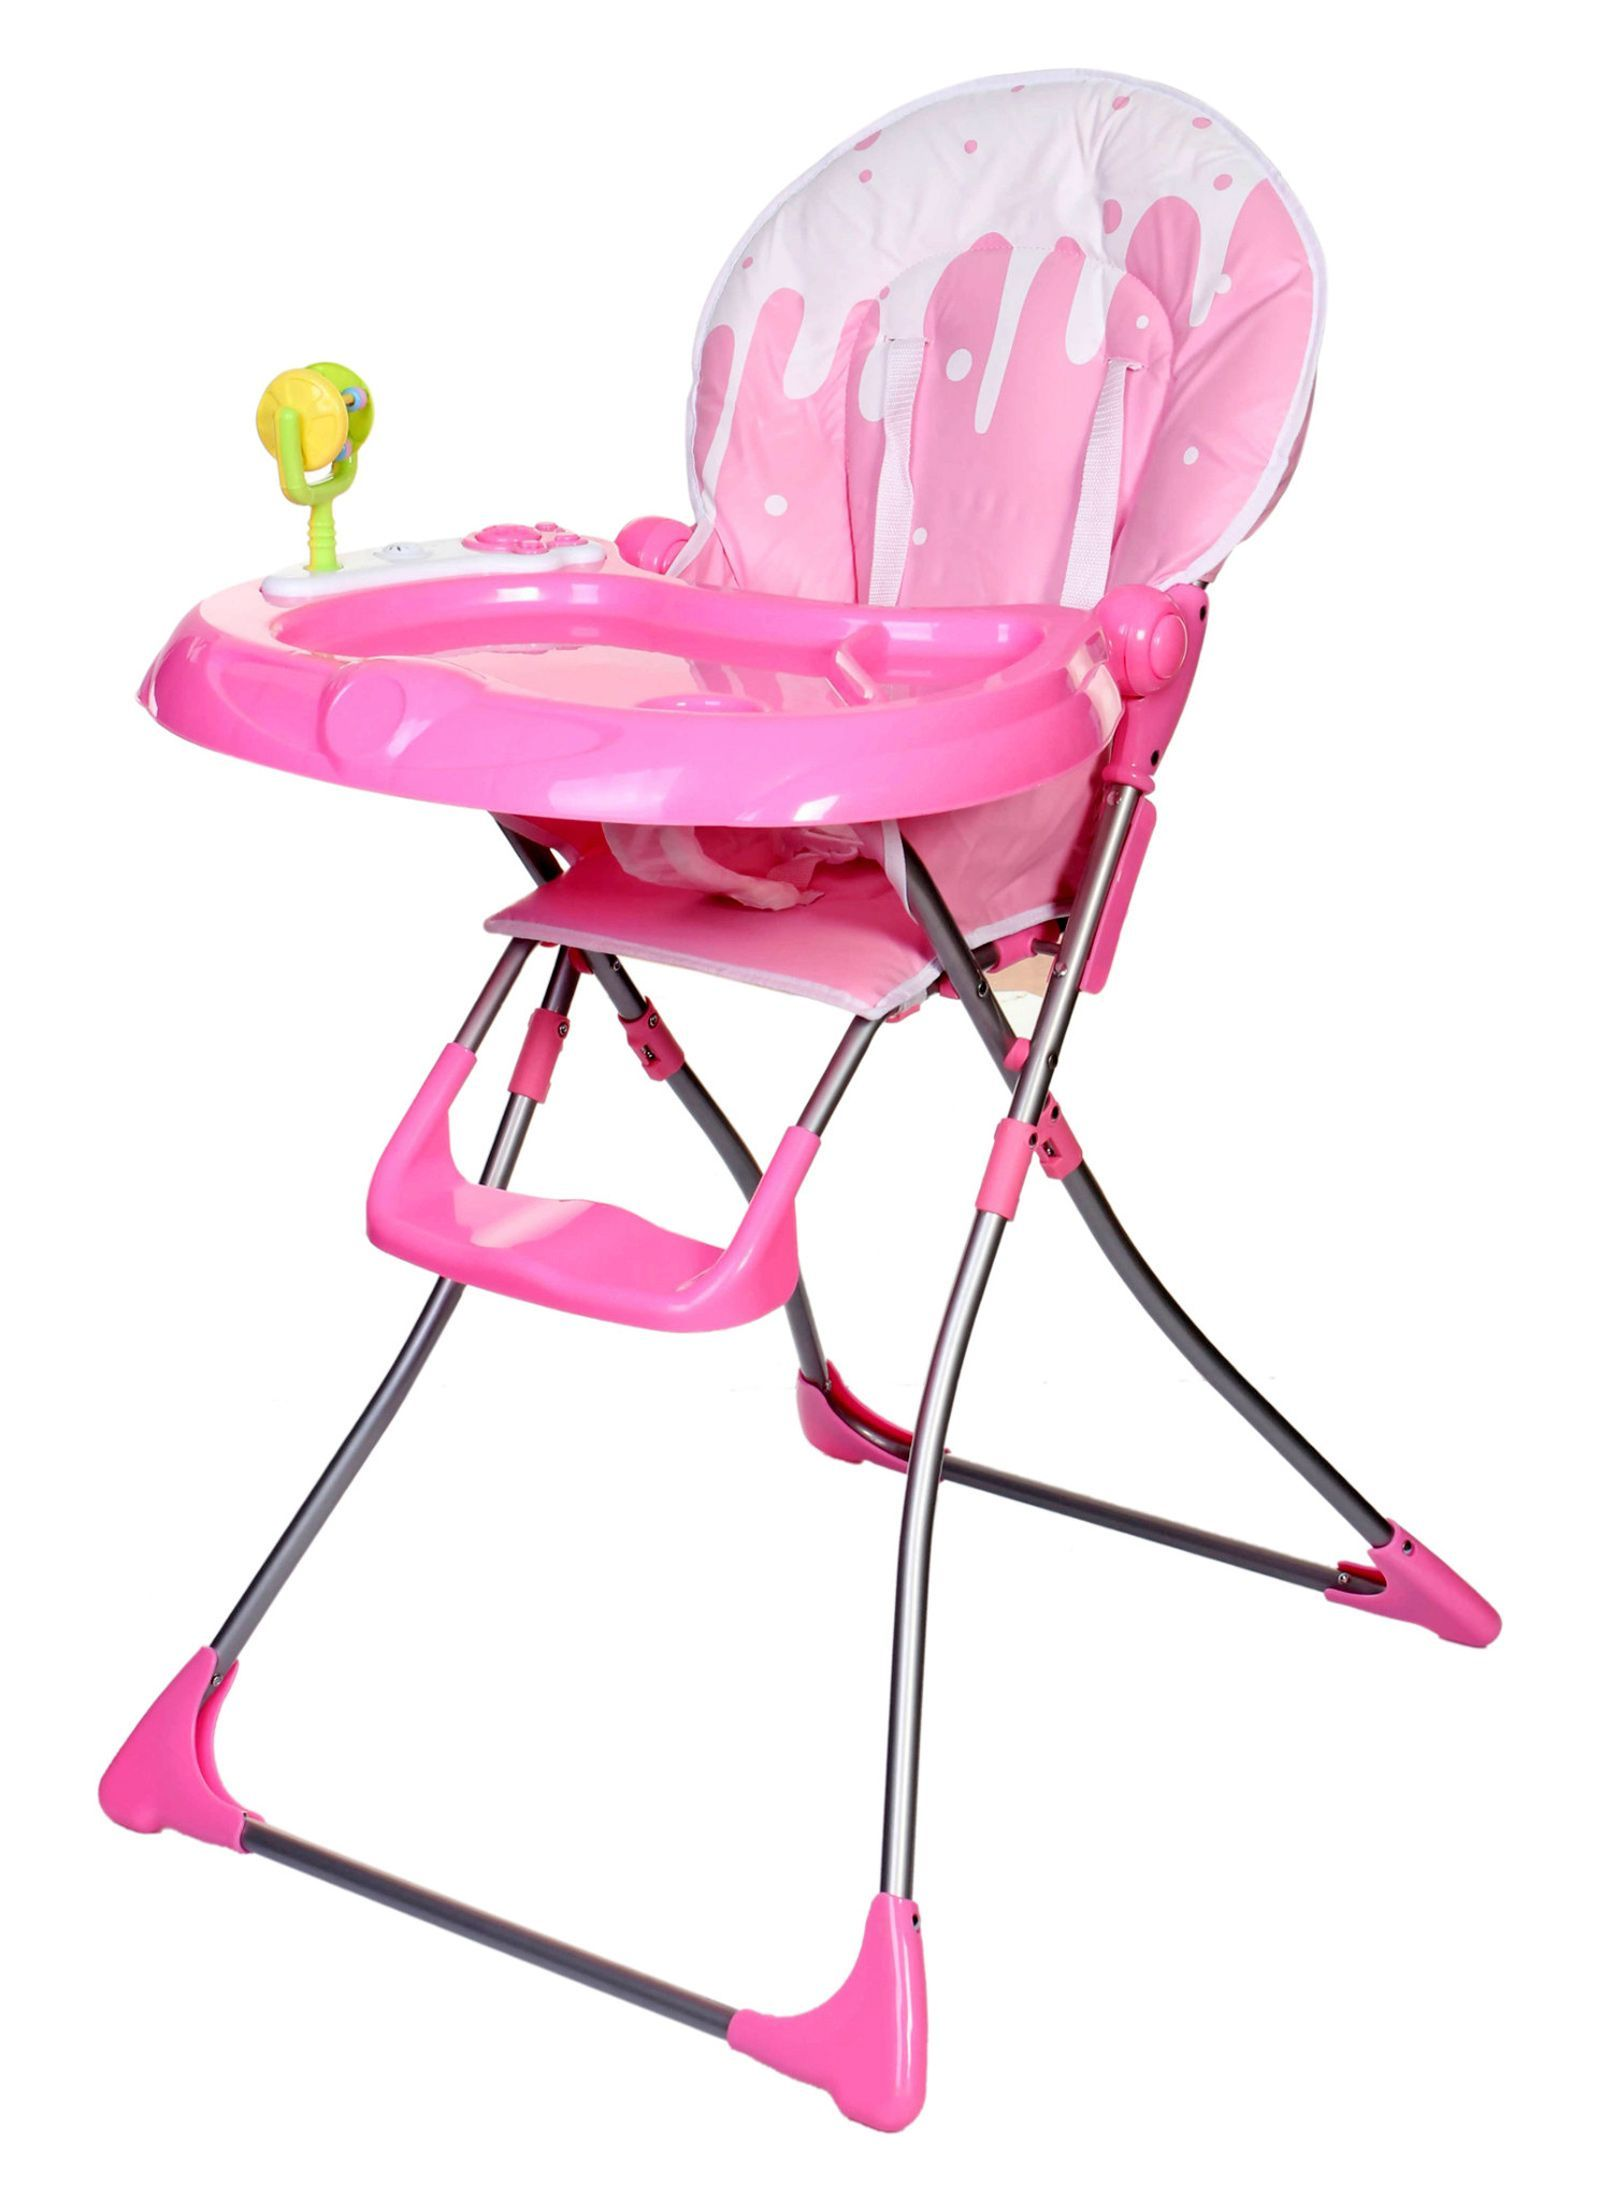 Buy High Chair Pink, Online Shopping For High Chair Pink